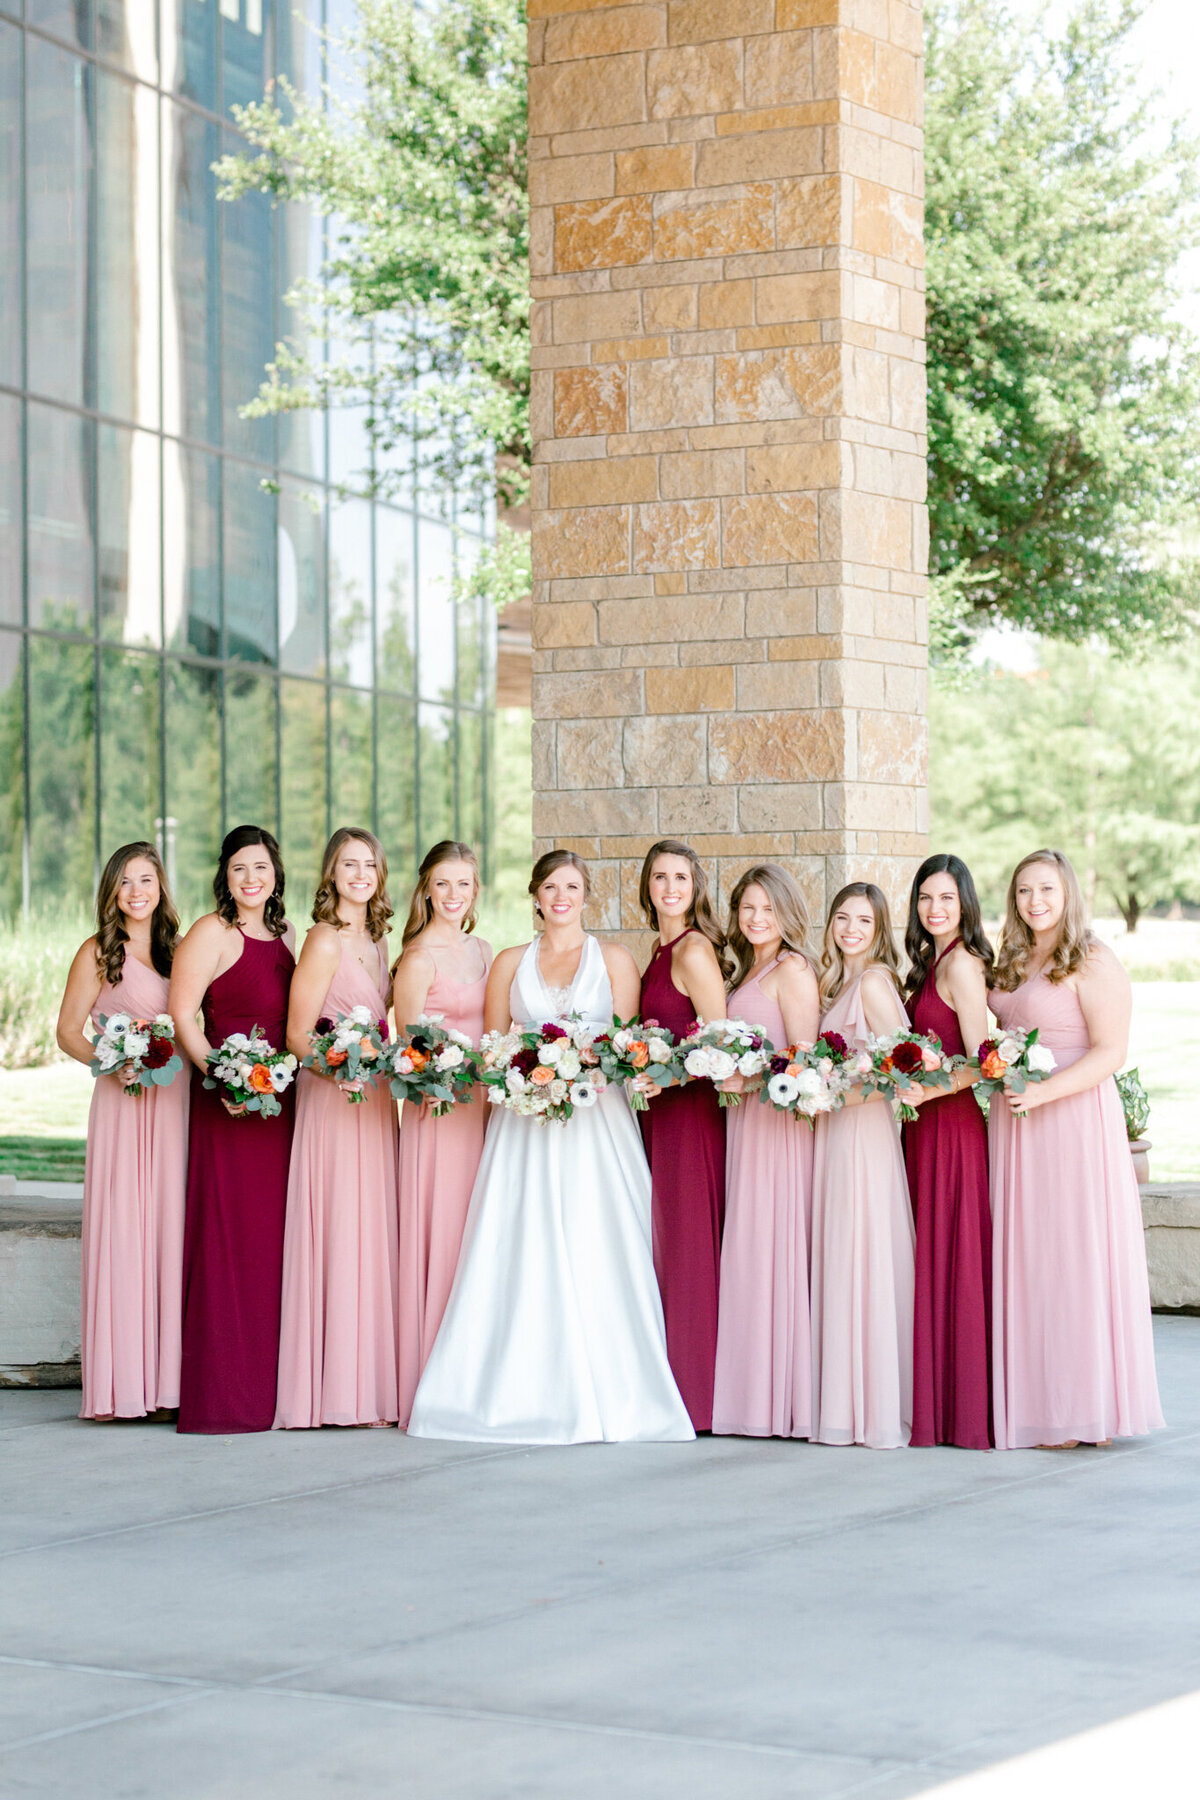 Kaylee & Michael's Wedding at Watermark Community Church | Dallas Wedding Photographer | Sami Kathryn Photography-78